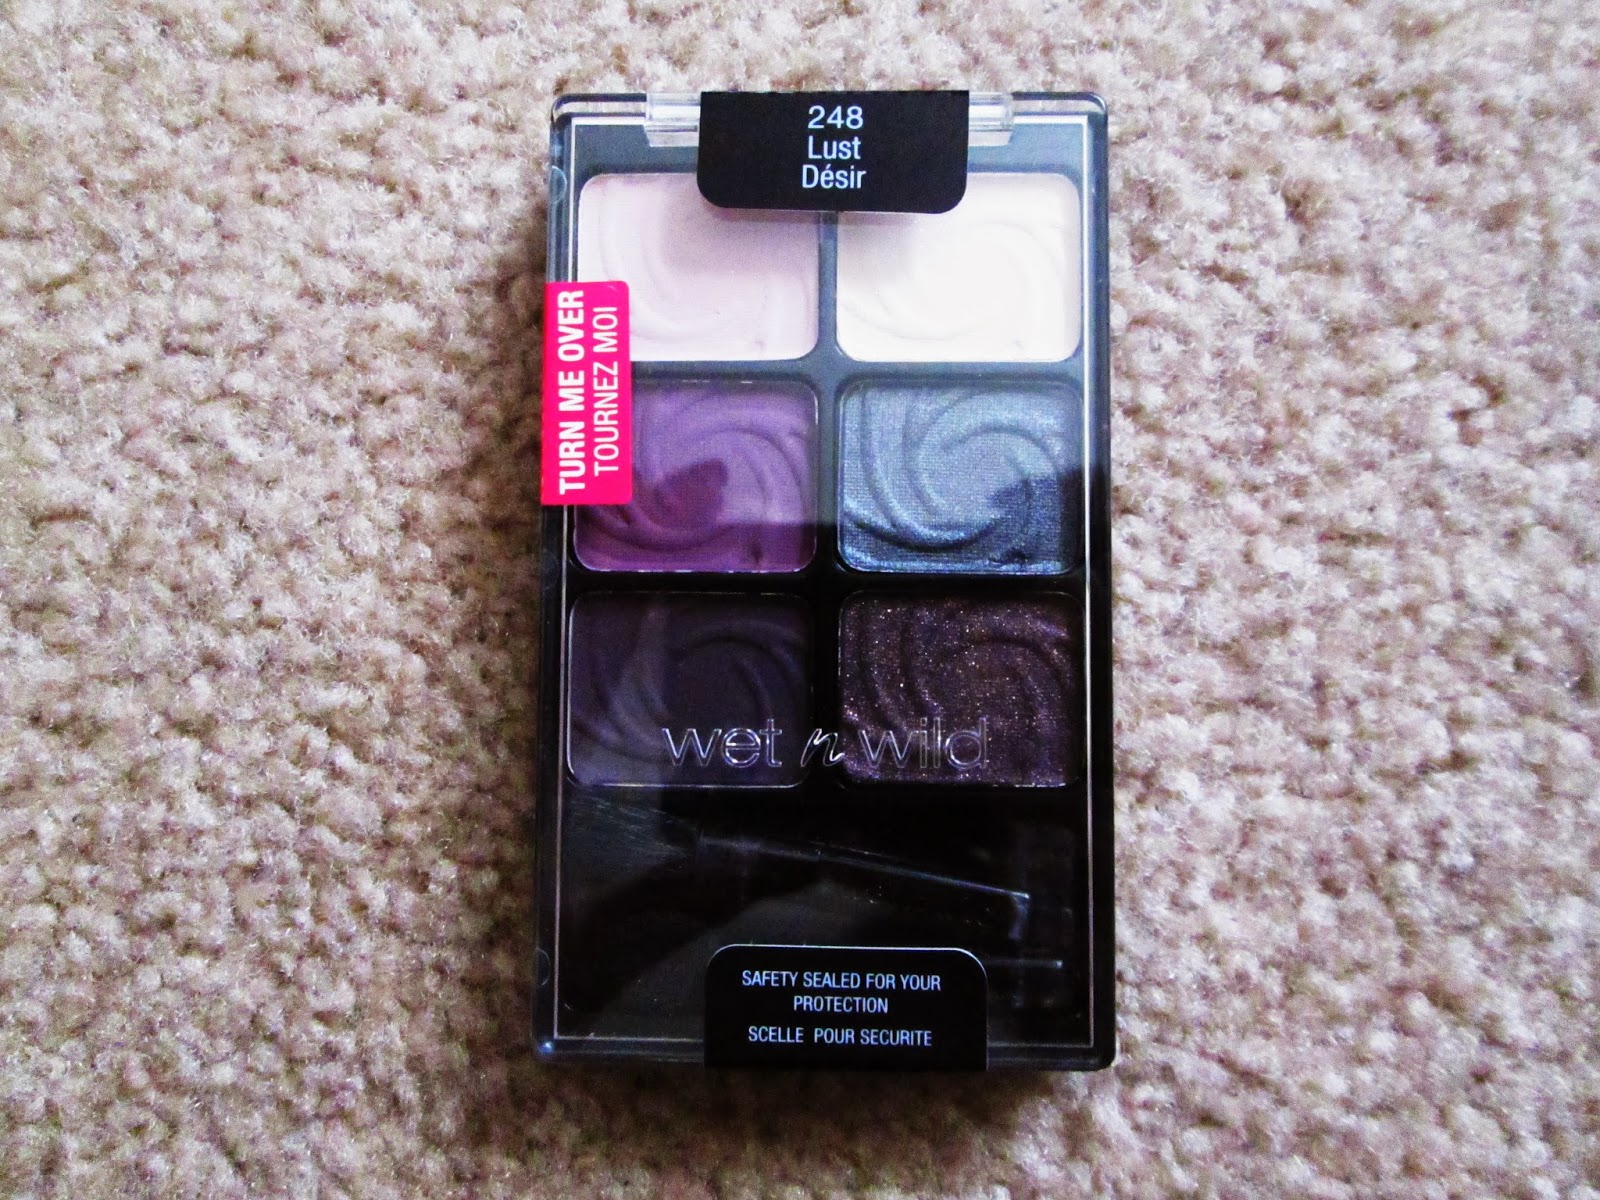 Wet N Wild Discontinued 6 Pan Palettes And Lip Products